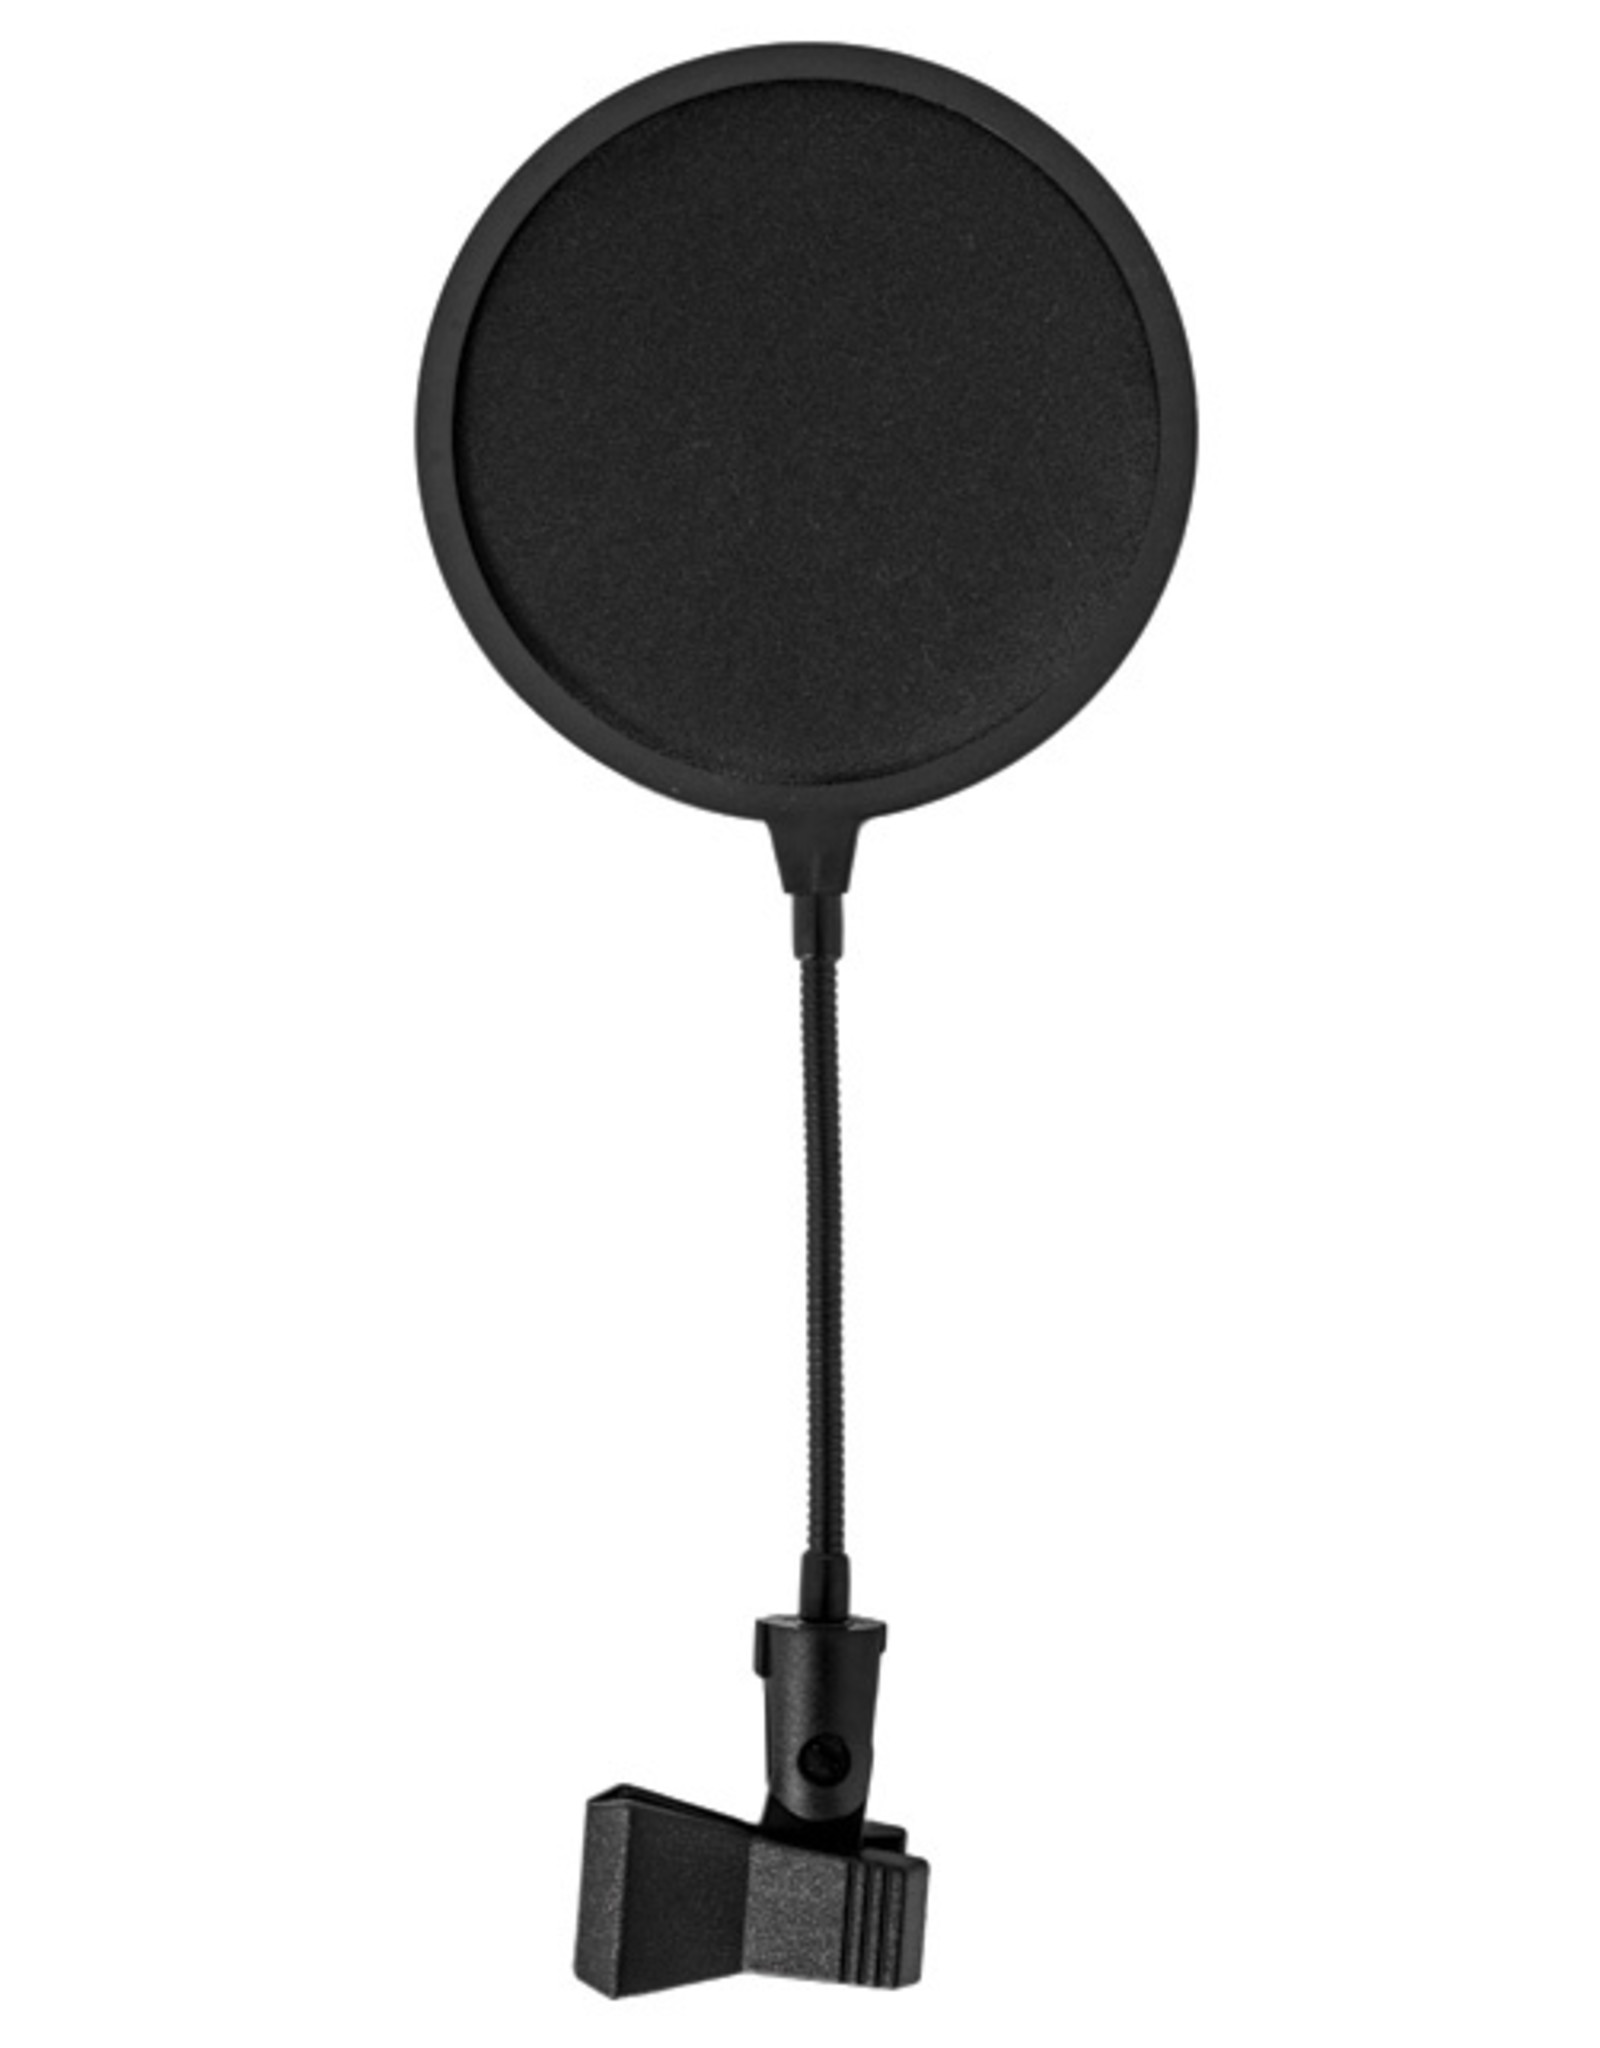 Nomad Nomad Studio POP Filter Clamp Mount